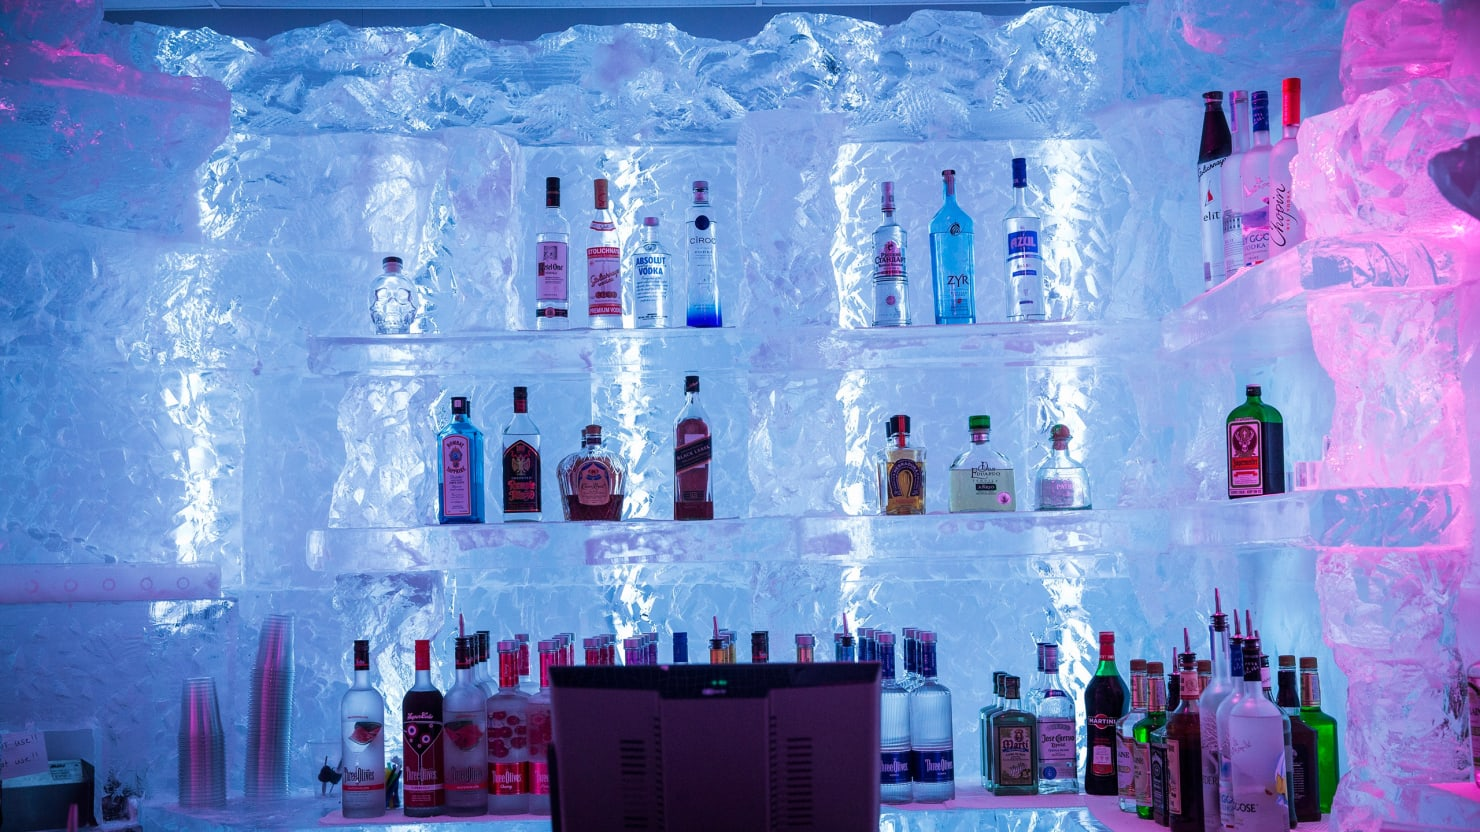 Minus5 is New York's First Ice Bar